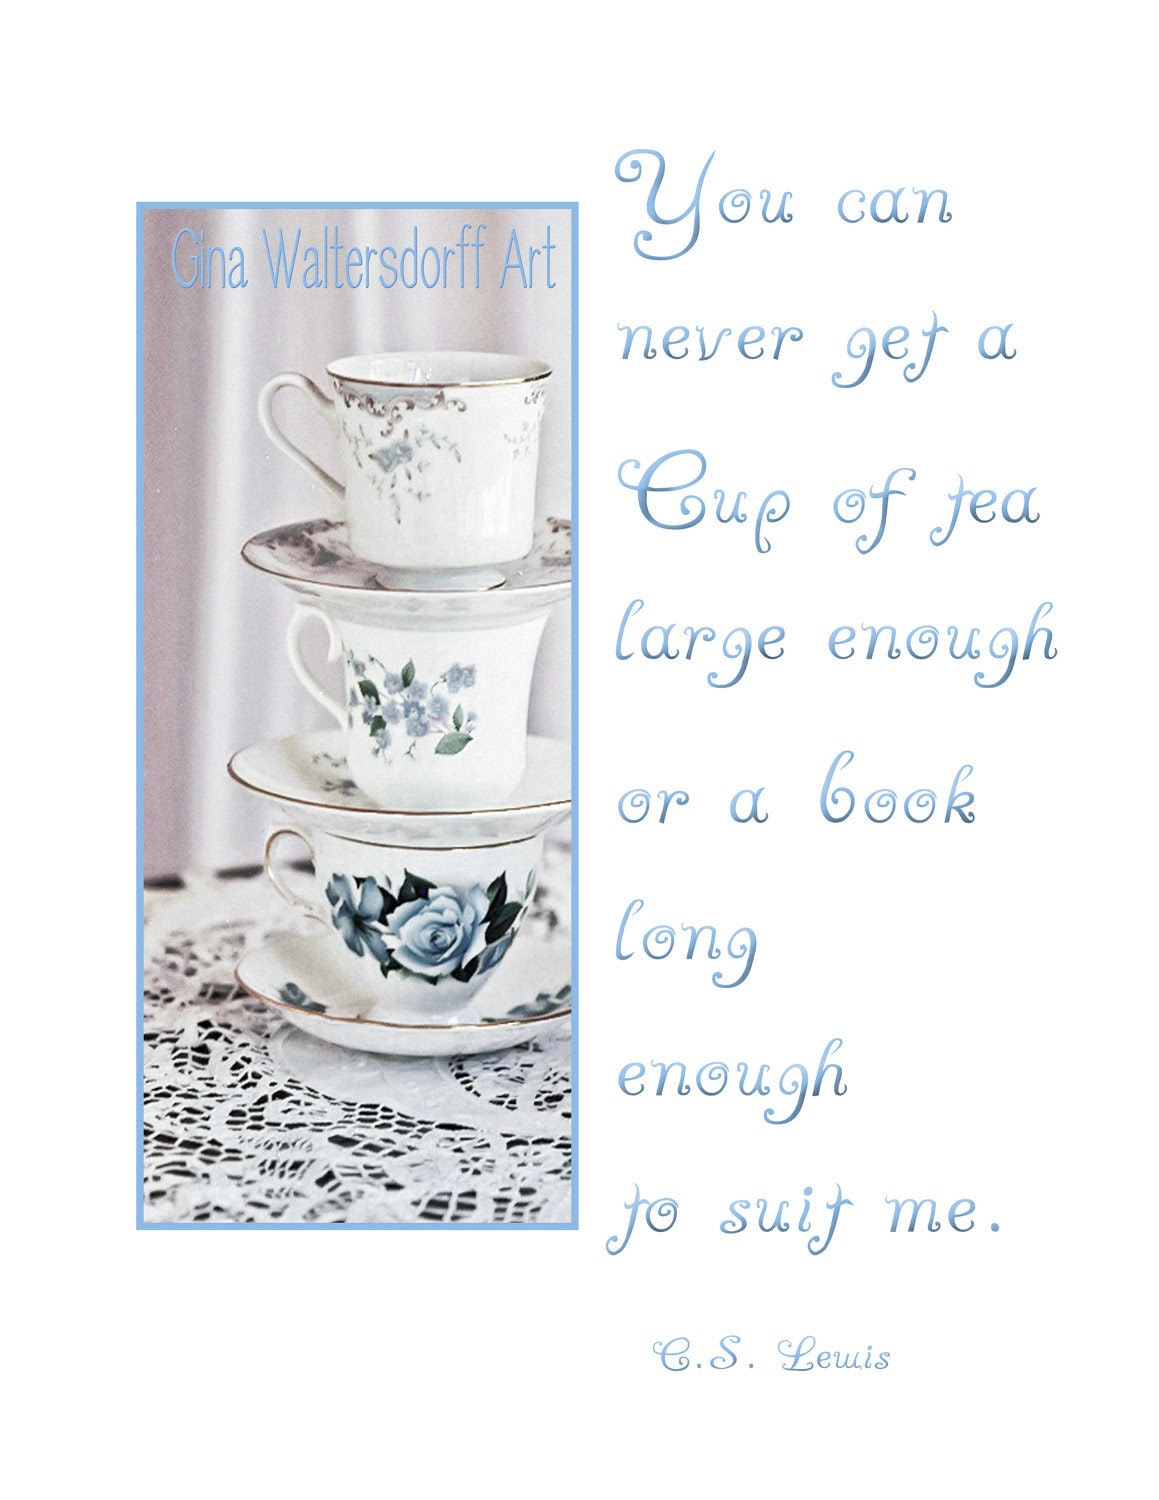 Tea Cups Book Quote CSLewis 8 x 10 by GinaWaltersdorffArt